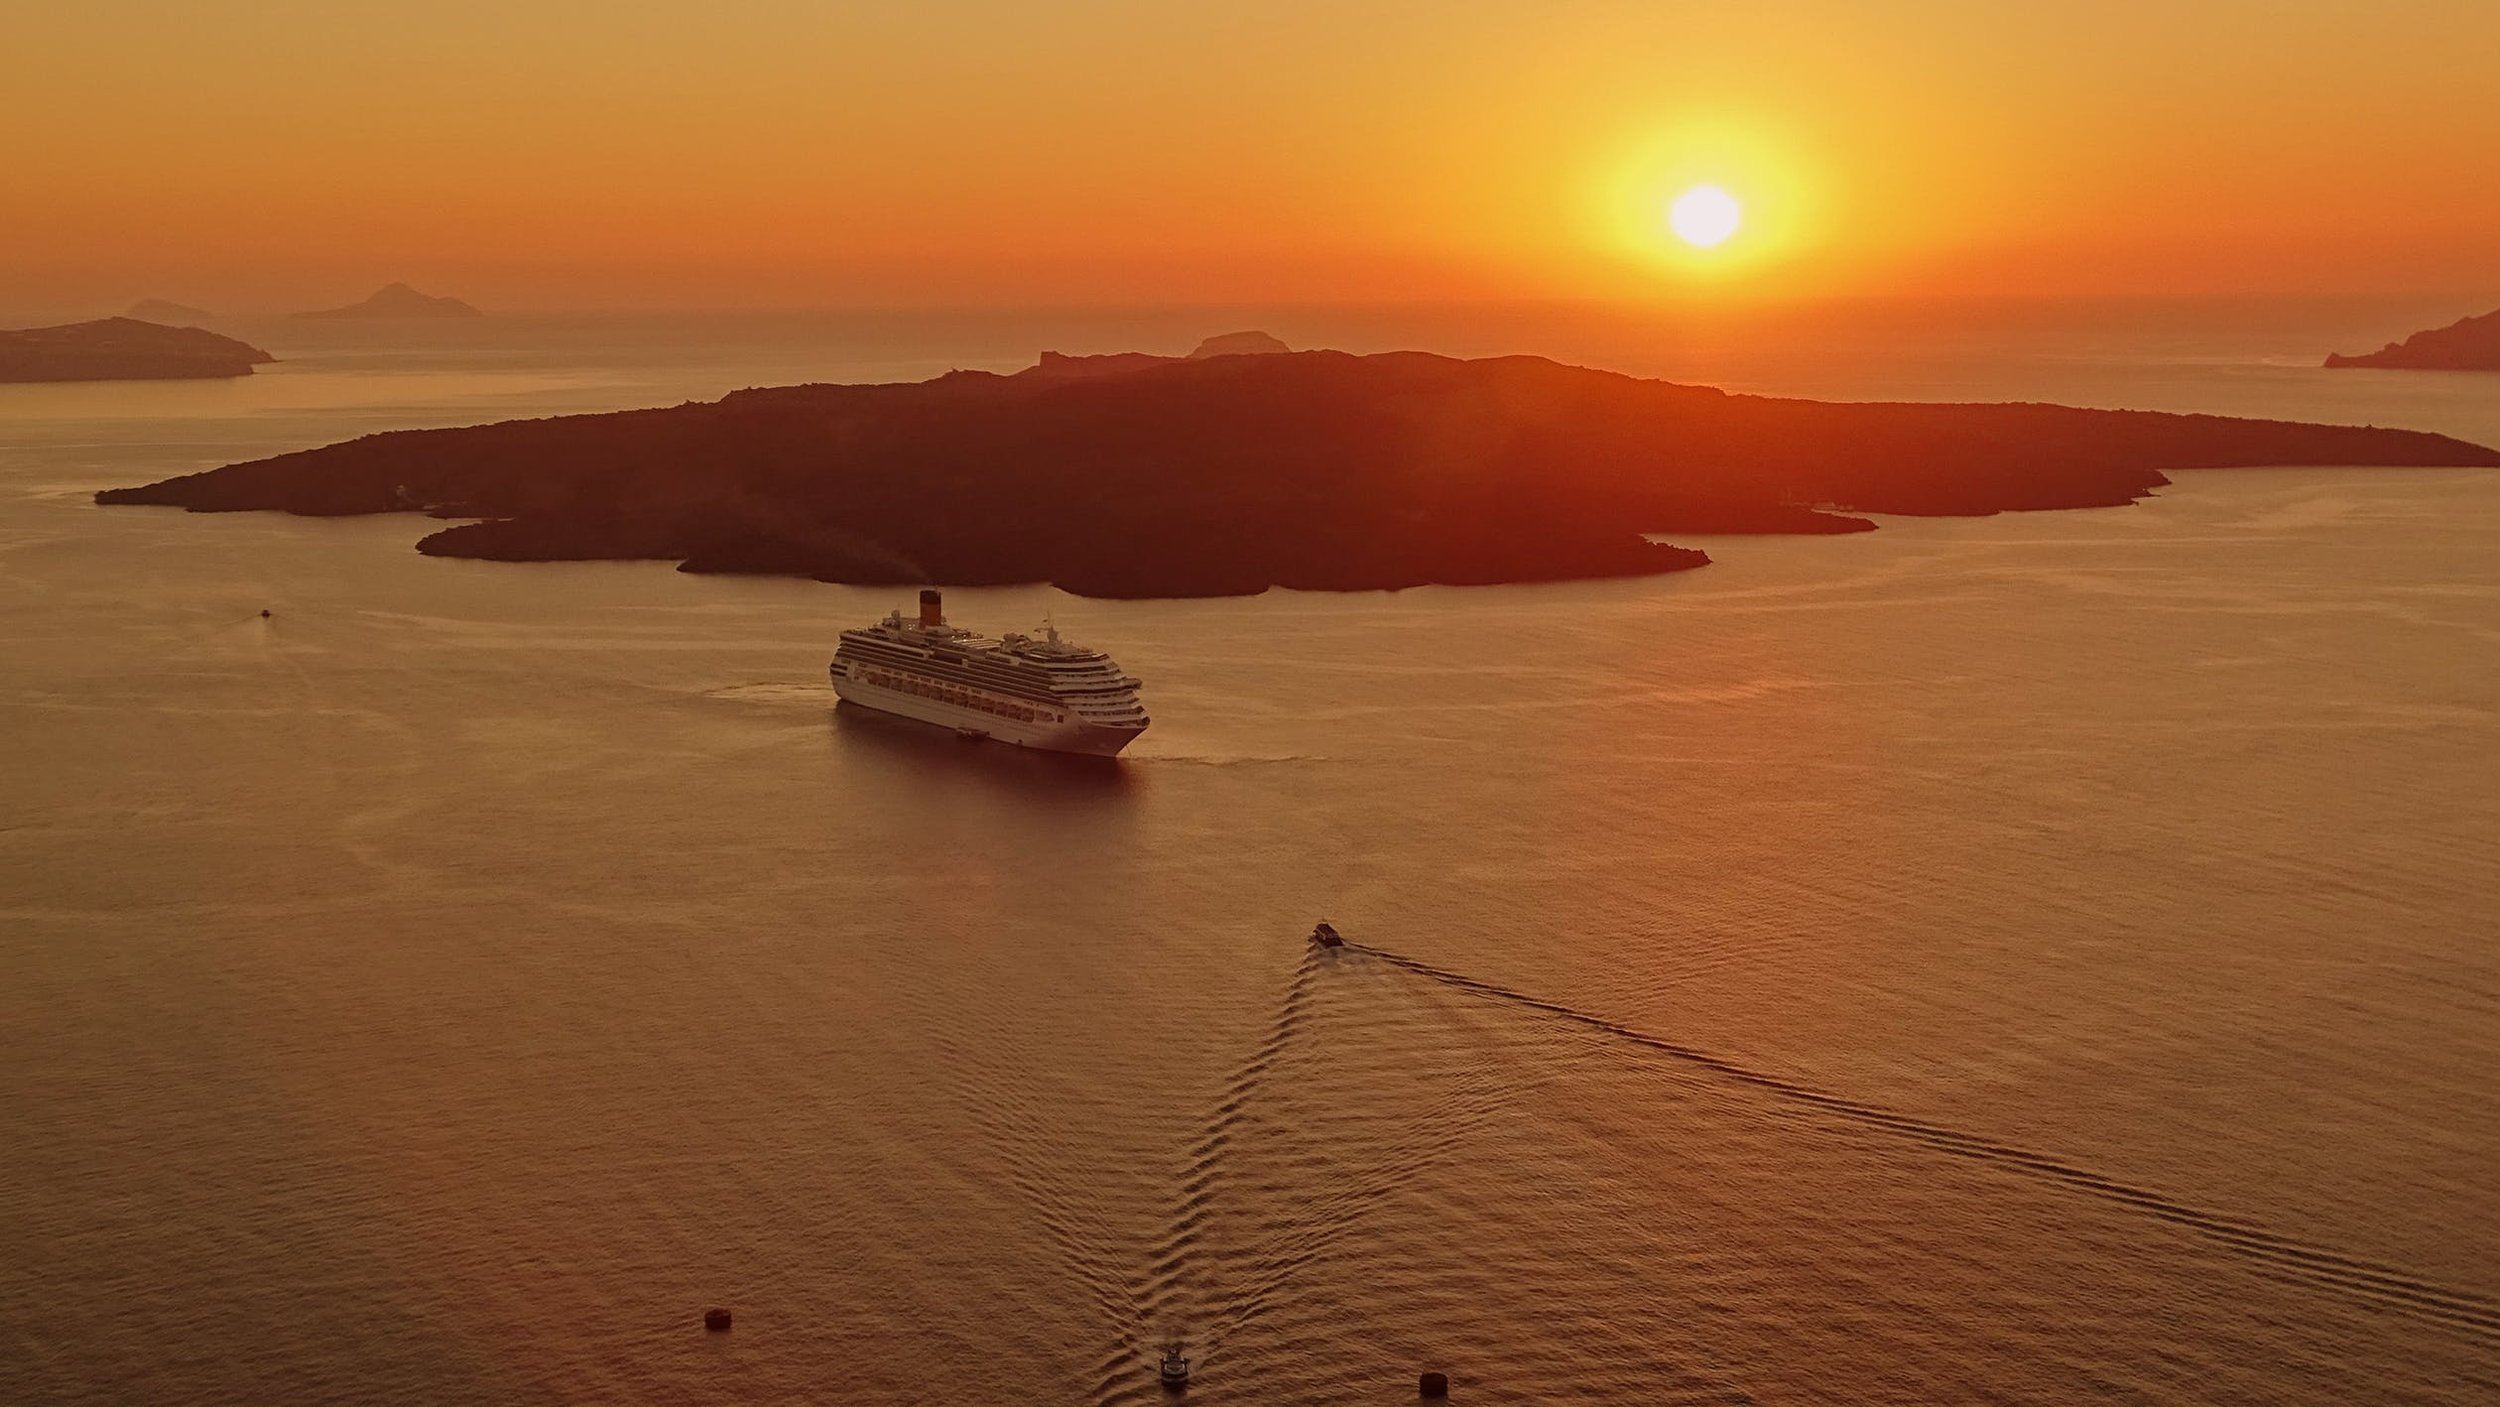 A new generation of Millennials are being introduced to travel on-board cruise vessels.